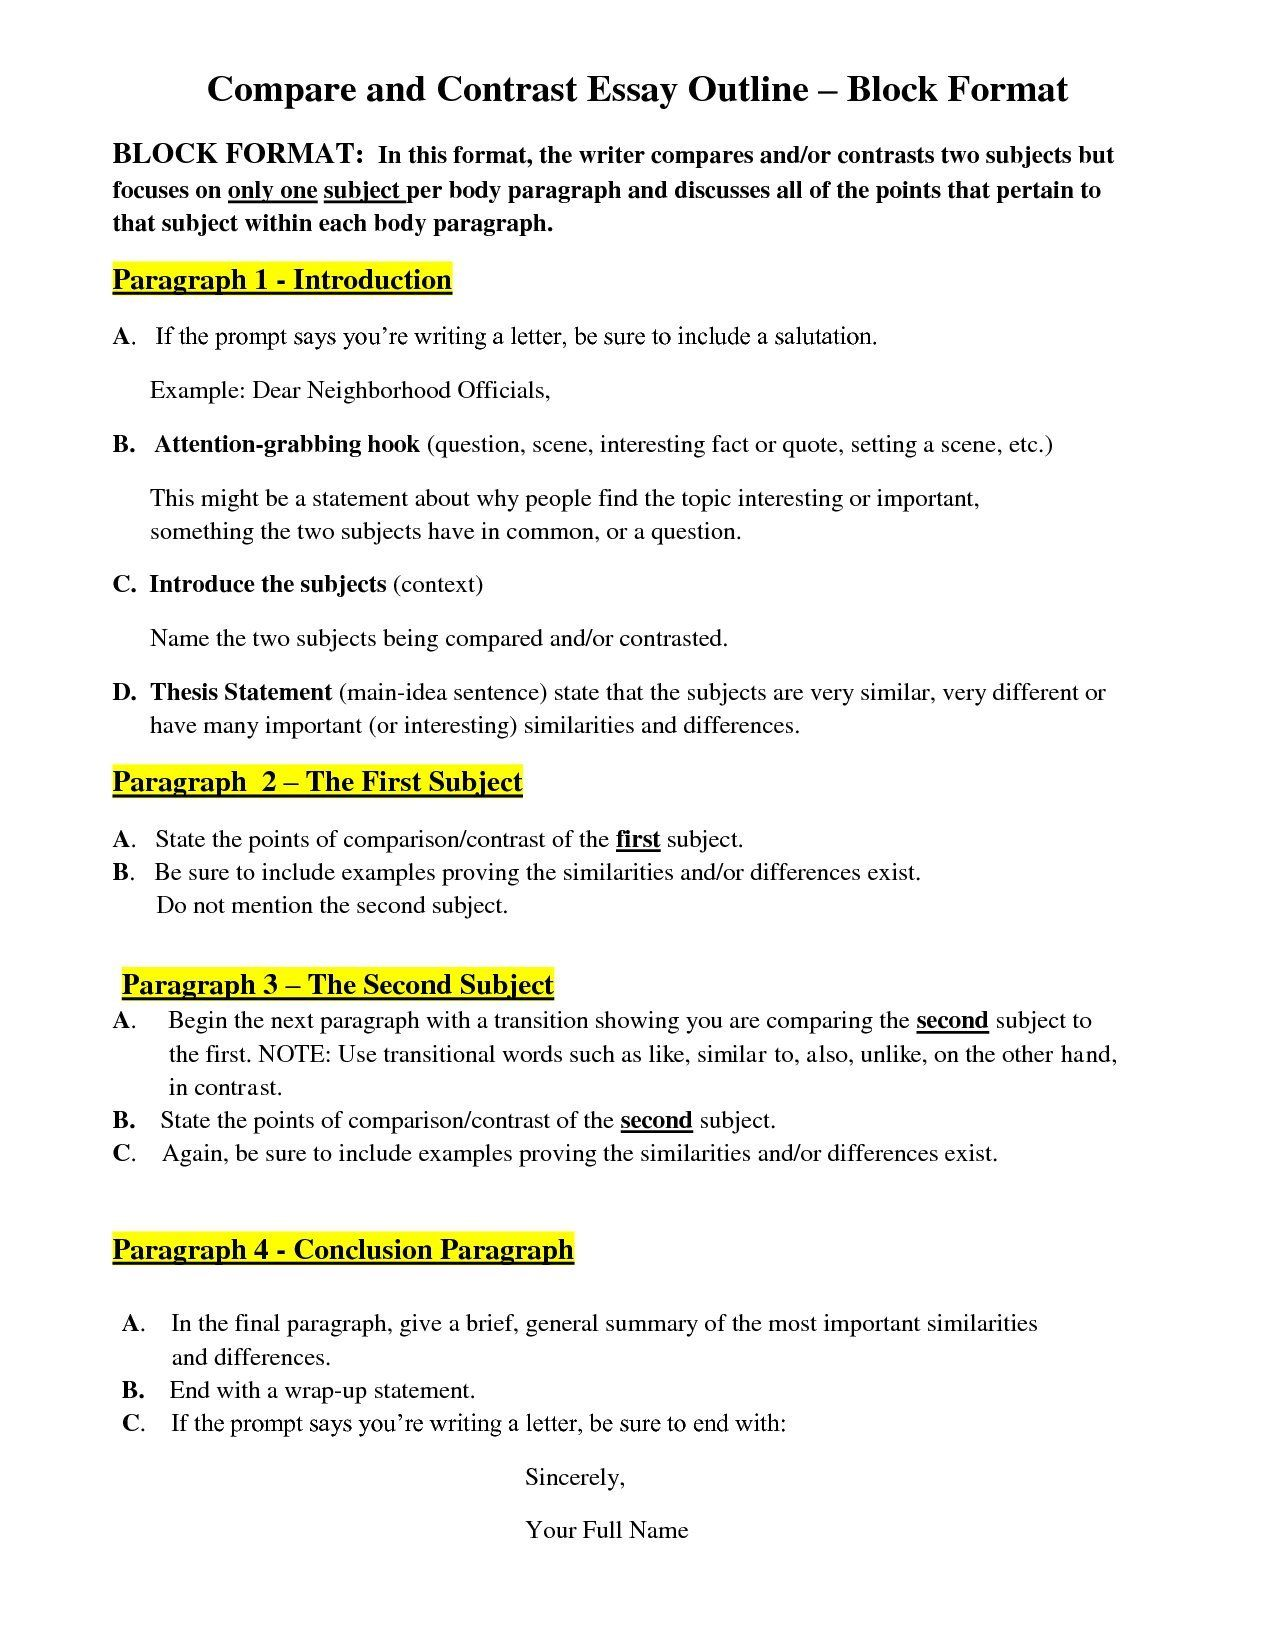 007 Compare And Contrast Essay Frightening Prompts 5th Grade Rubric College Ideas 12th Full